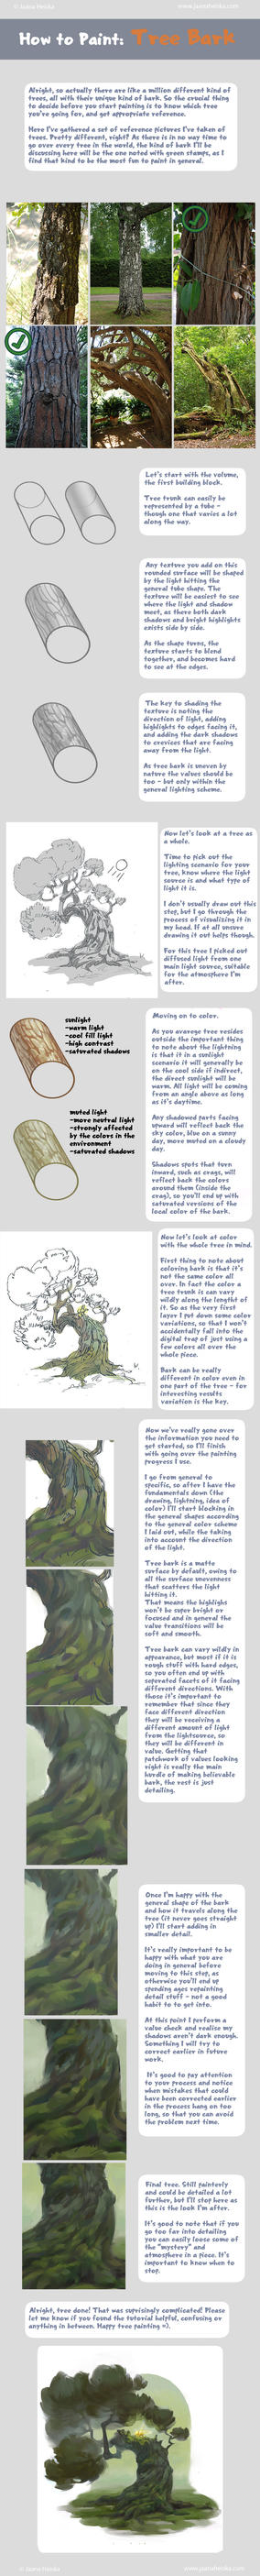 How to Paint Tree Bark by Suncut